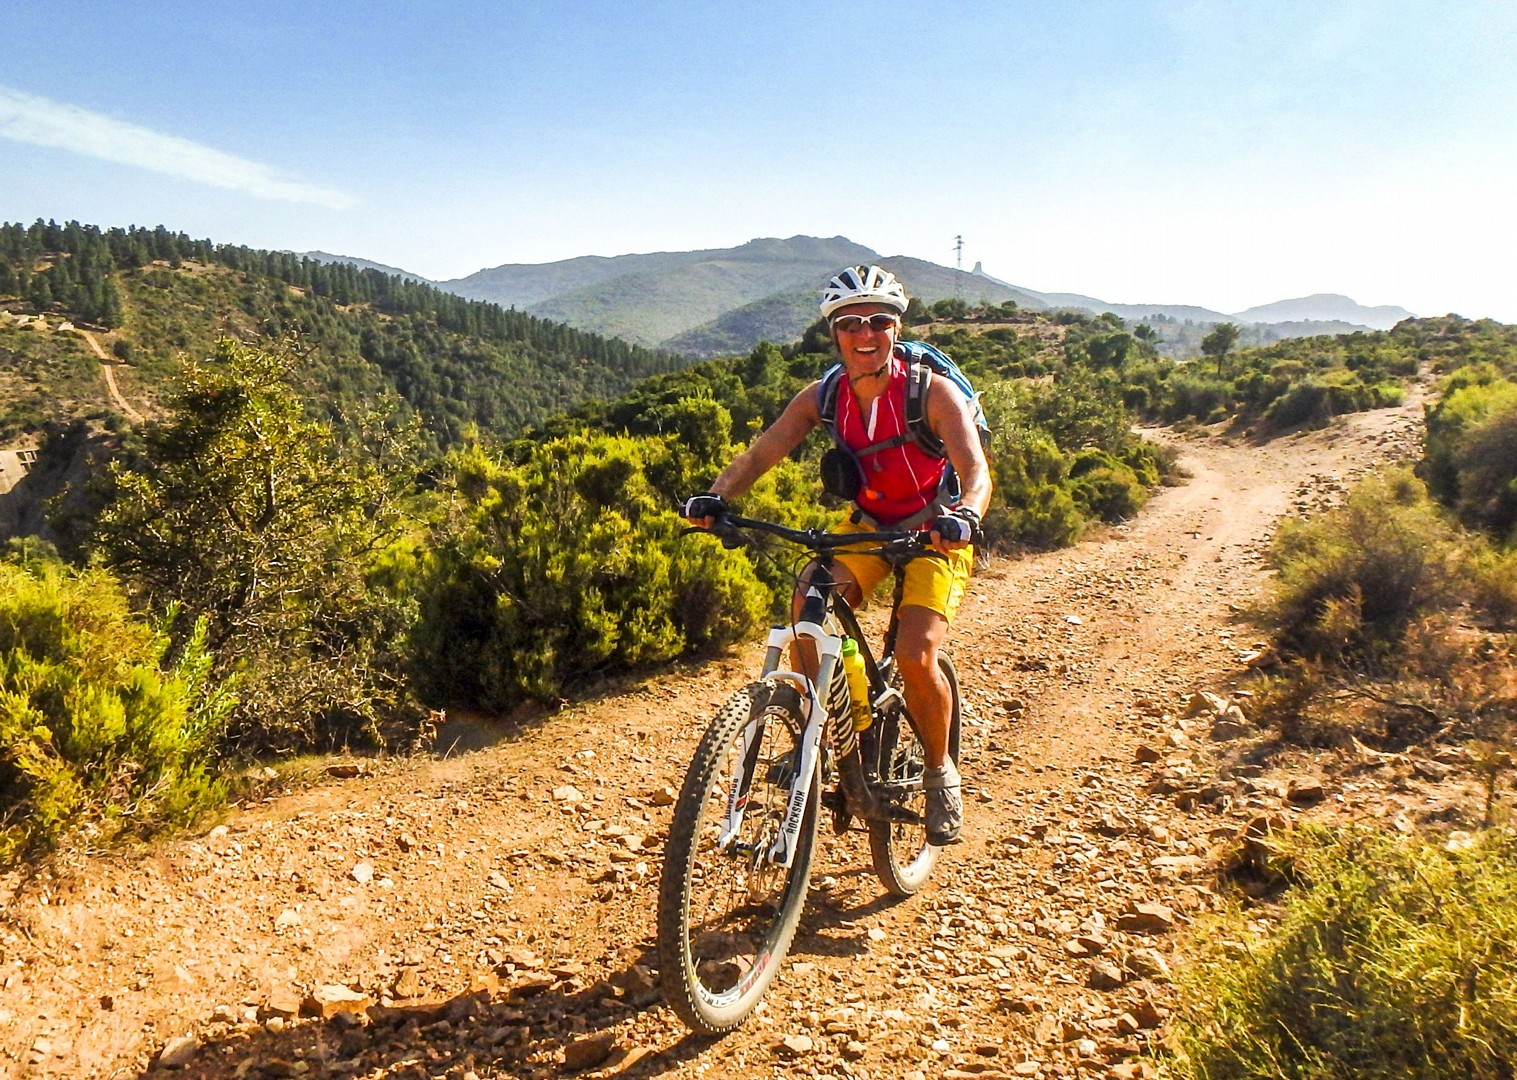 woman-mountain-biking-saddle-skedaddle-sardinia-italy.jpg - Italy - Sardinia - Coast to Coast - Self-Guided Mountain Bike Holiday - Mountain Biking